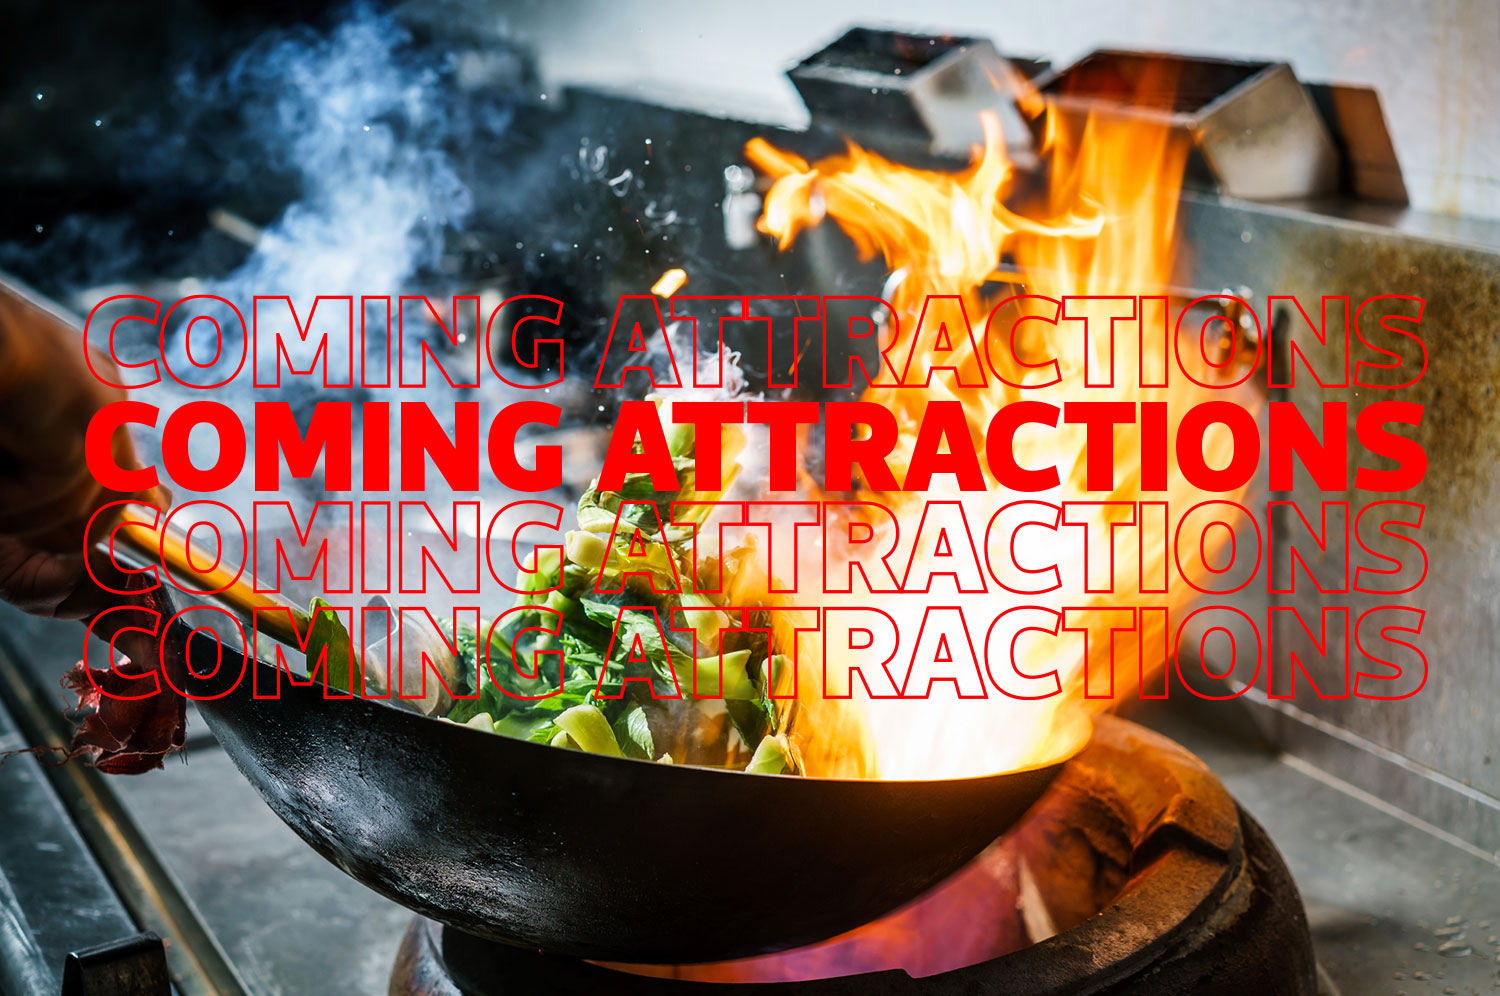 A wok being cooked with green leafy vegetables and a burst of fire over a stove